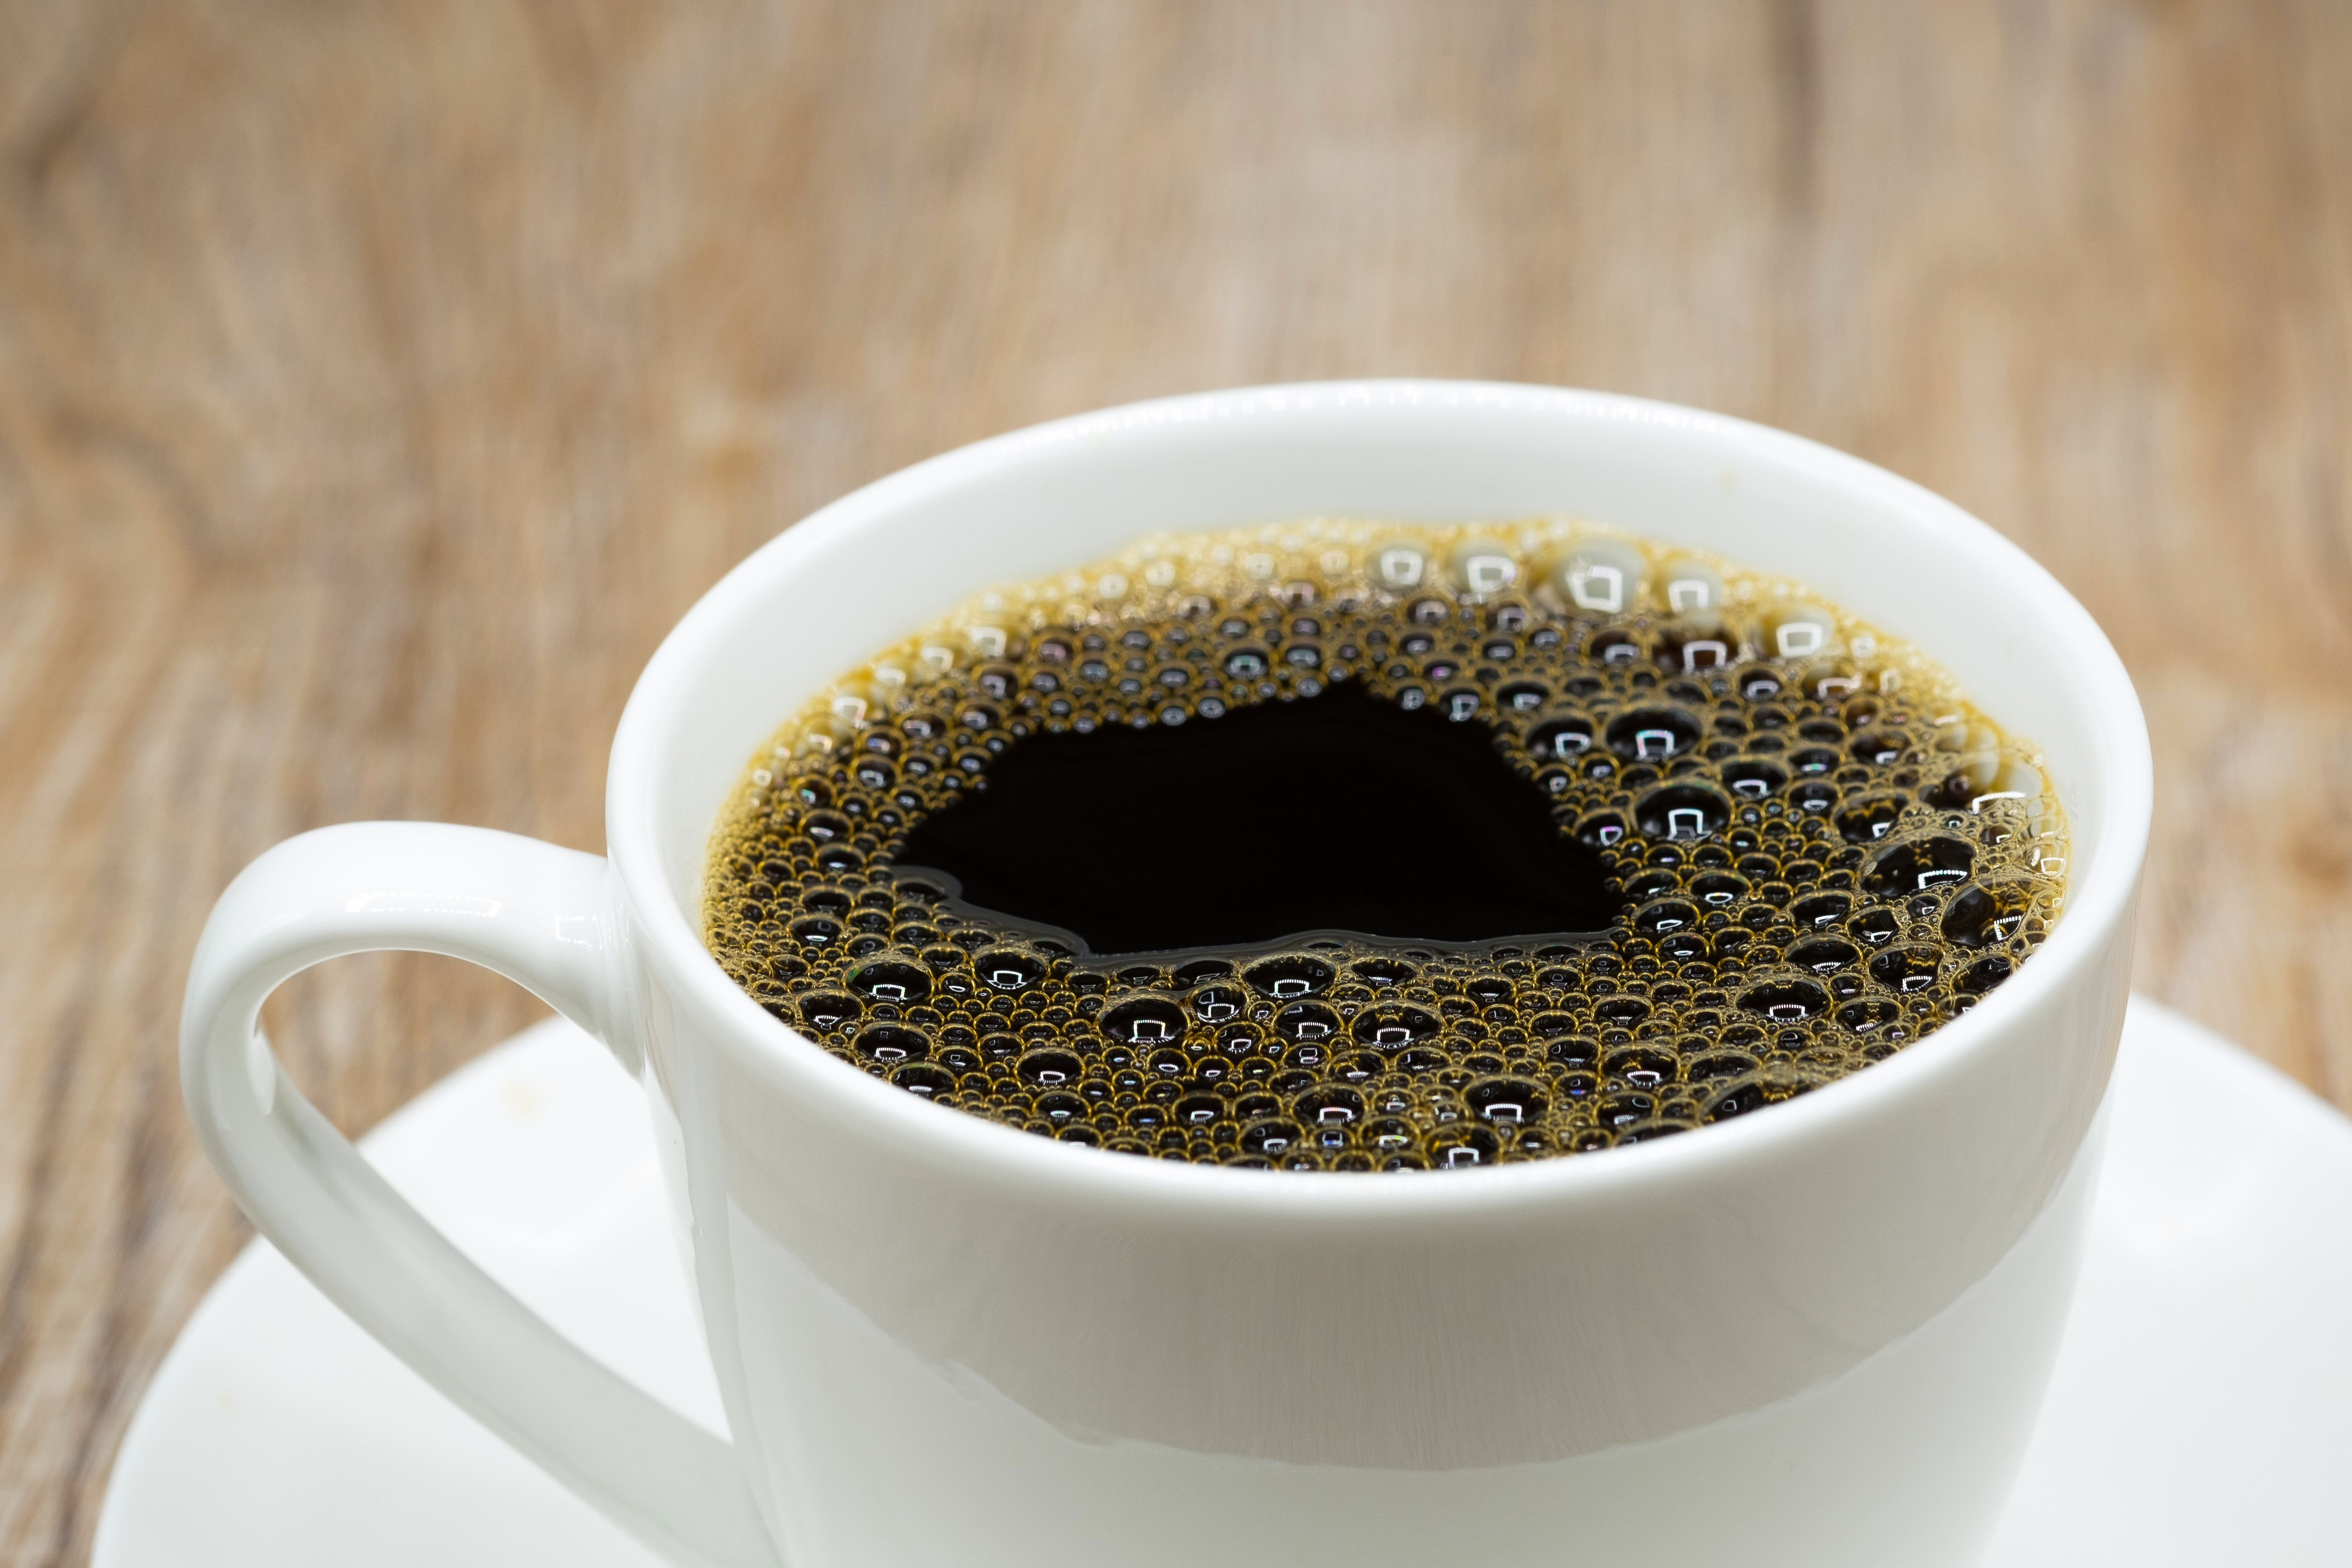 A hot cup of black coffee. | Source: Shutterstock